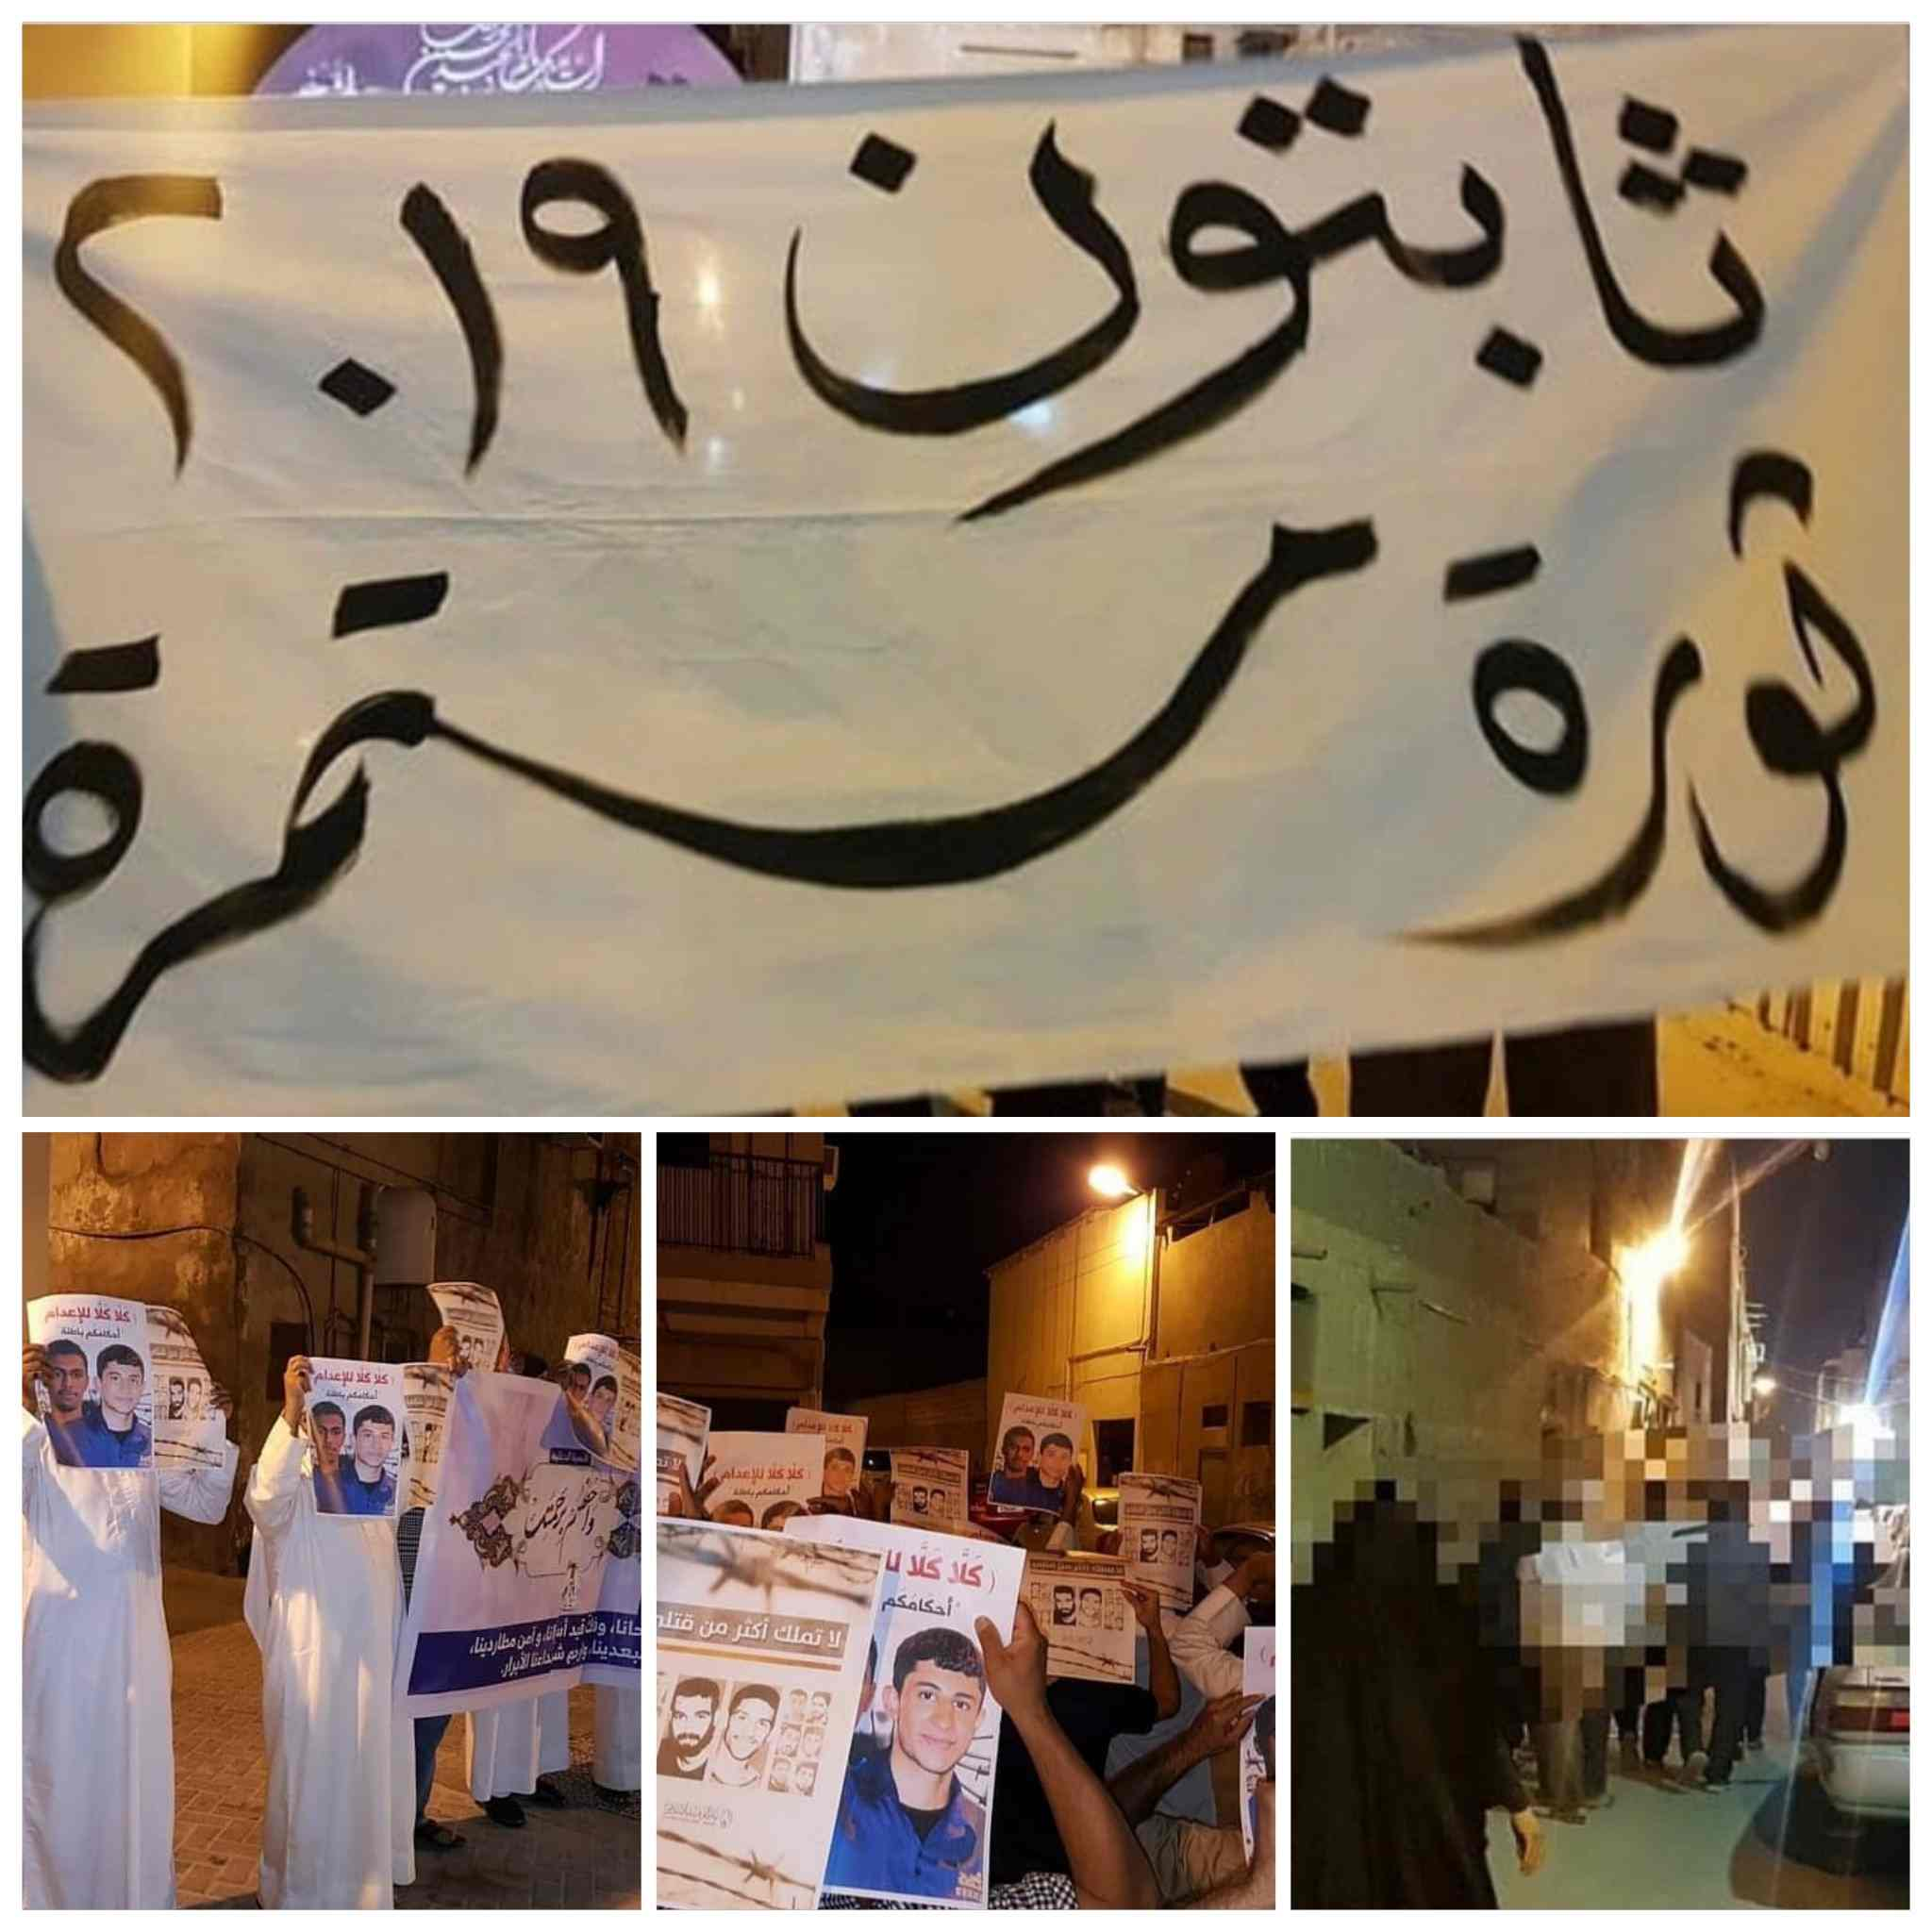 Revolutionary demonstrations take place in a number of towns in solidarity with political prisoners